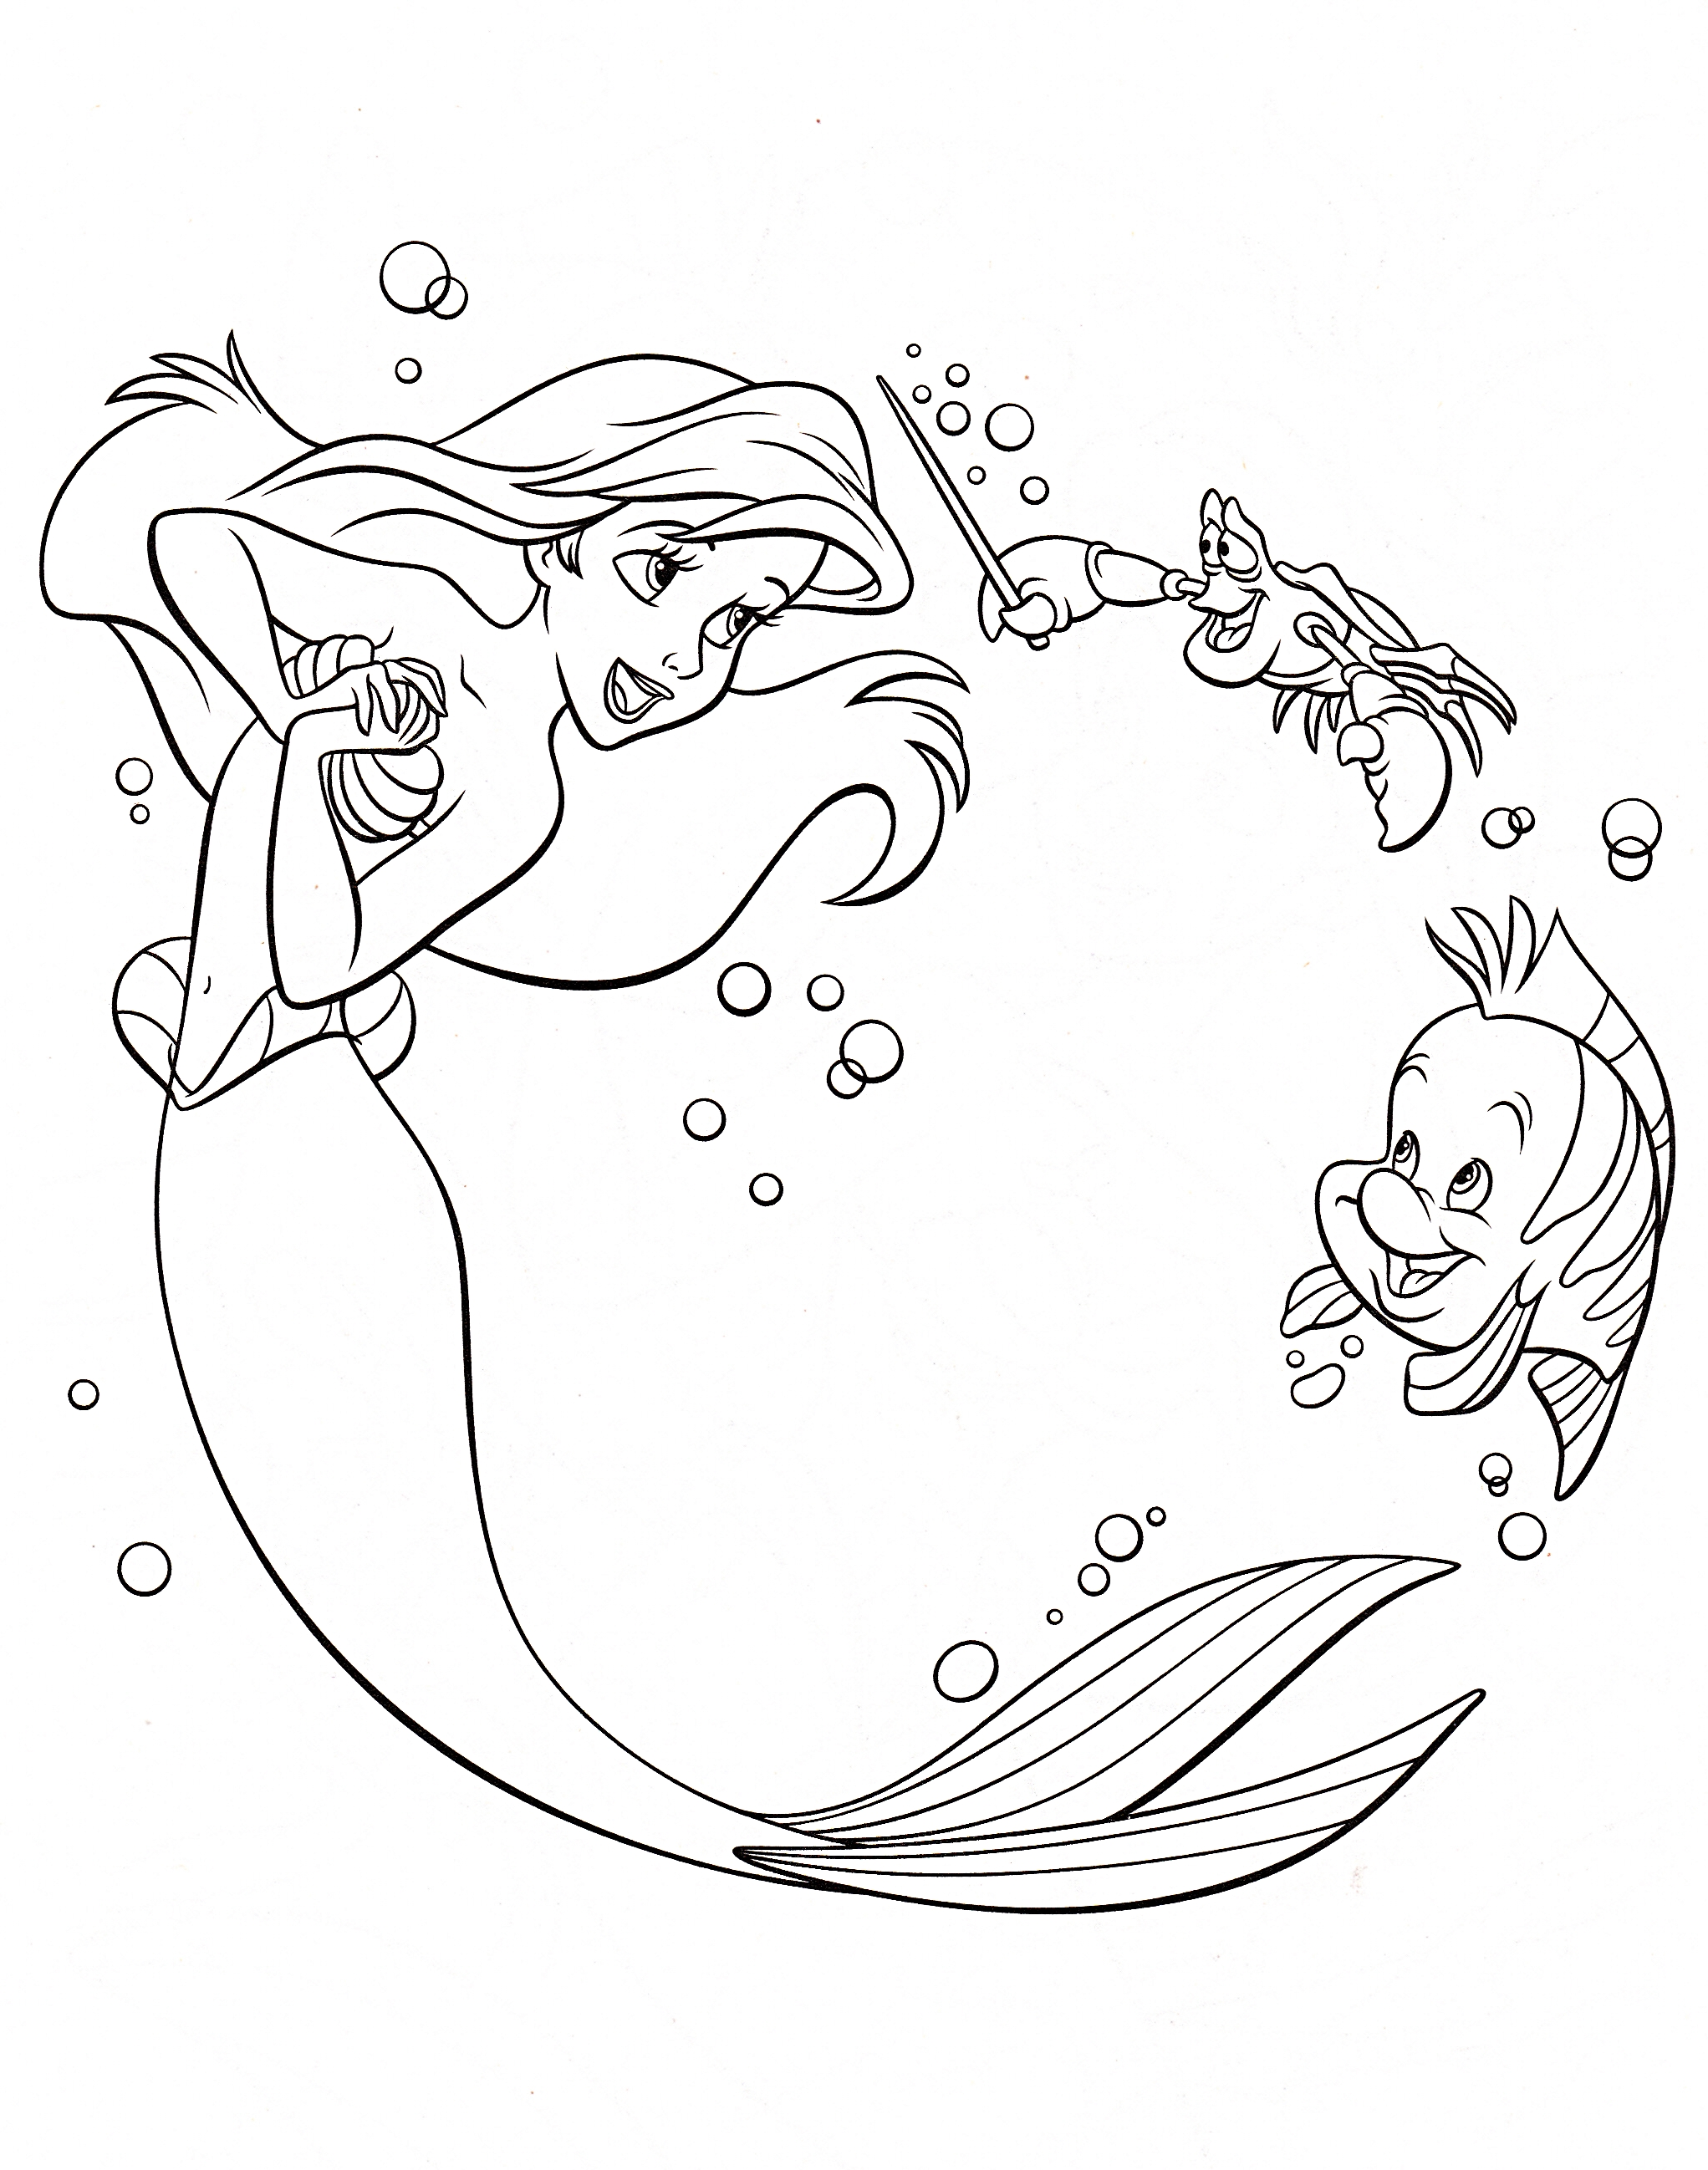 ariel coloring pages - Princess Ariel Coloring Pages